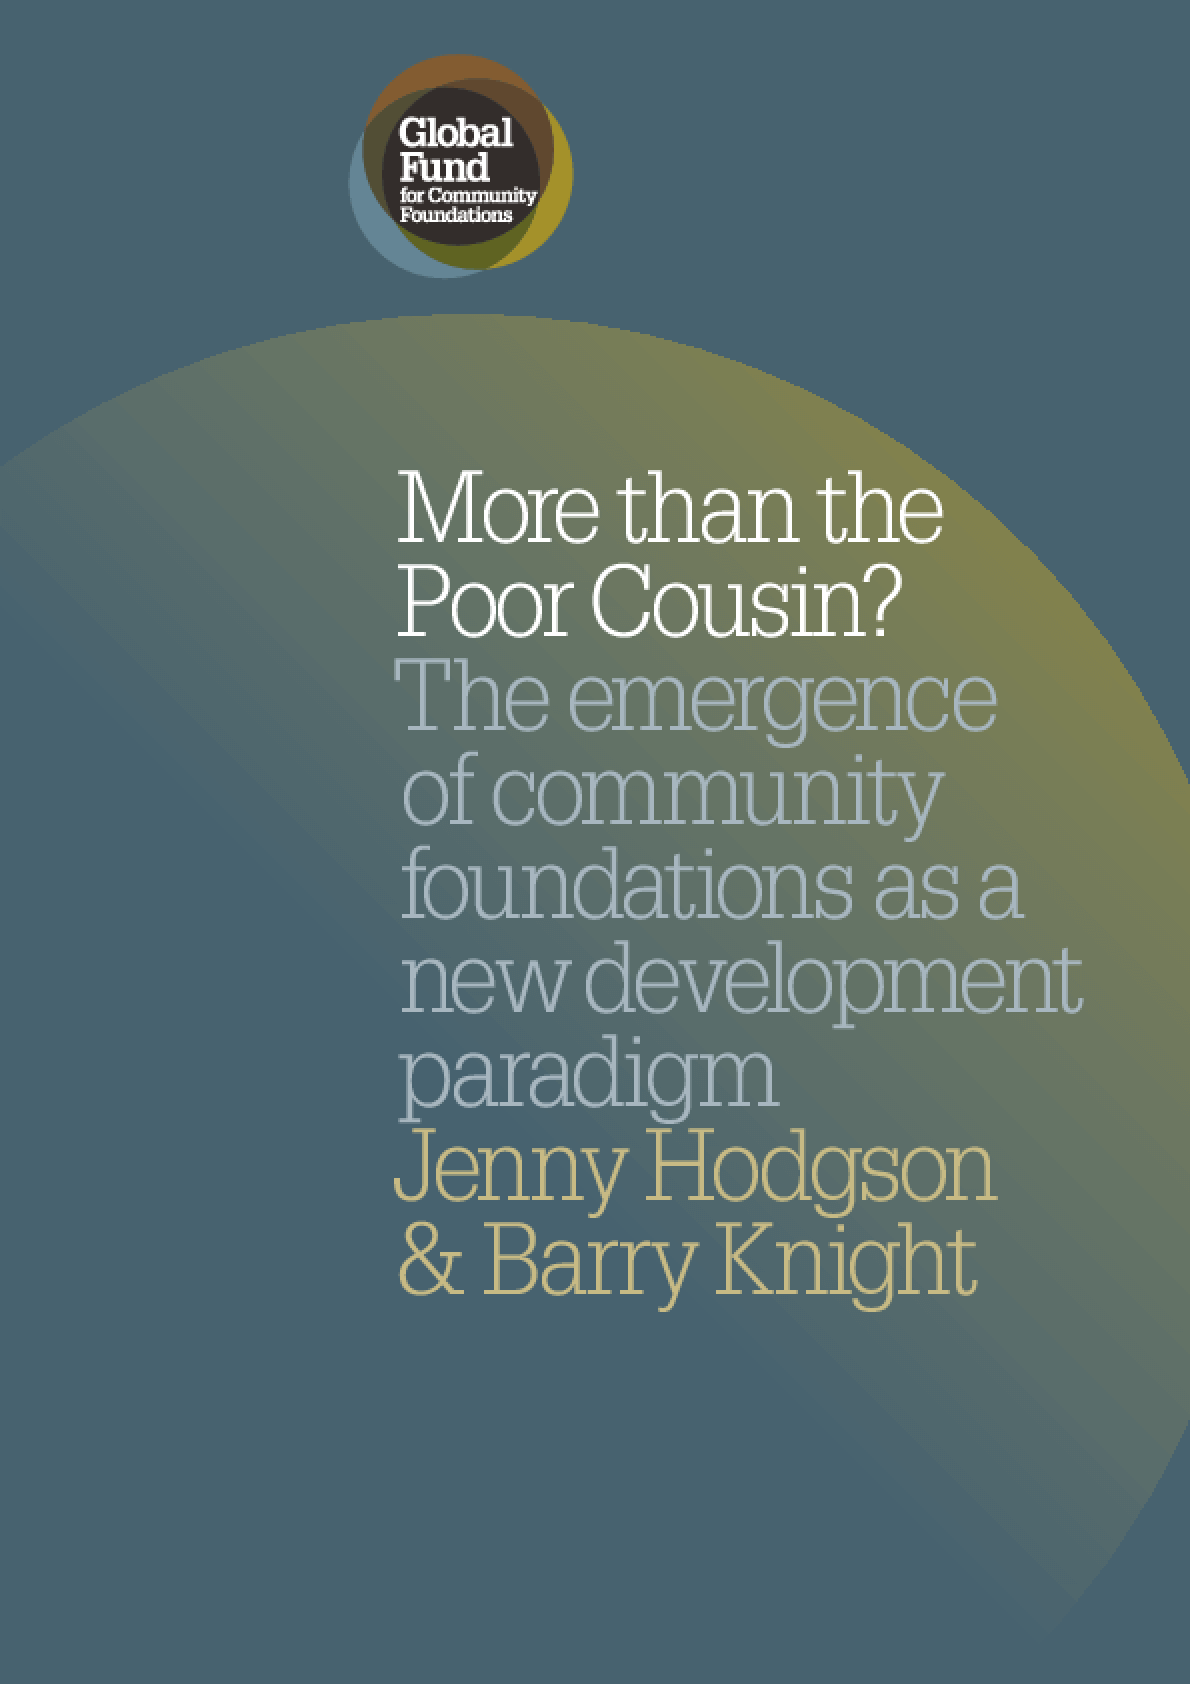 More Than the Poor Cousin? The Emergence of Community Foundations as a New Development Paradigm